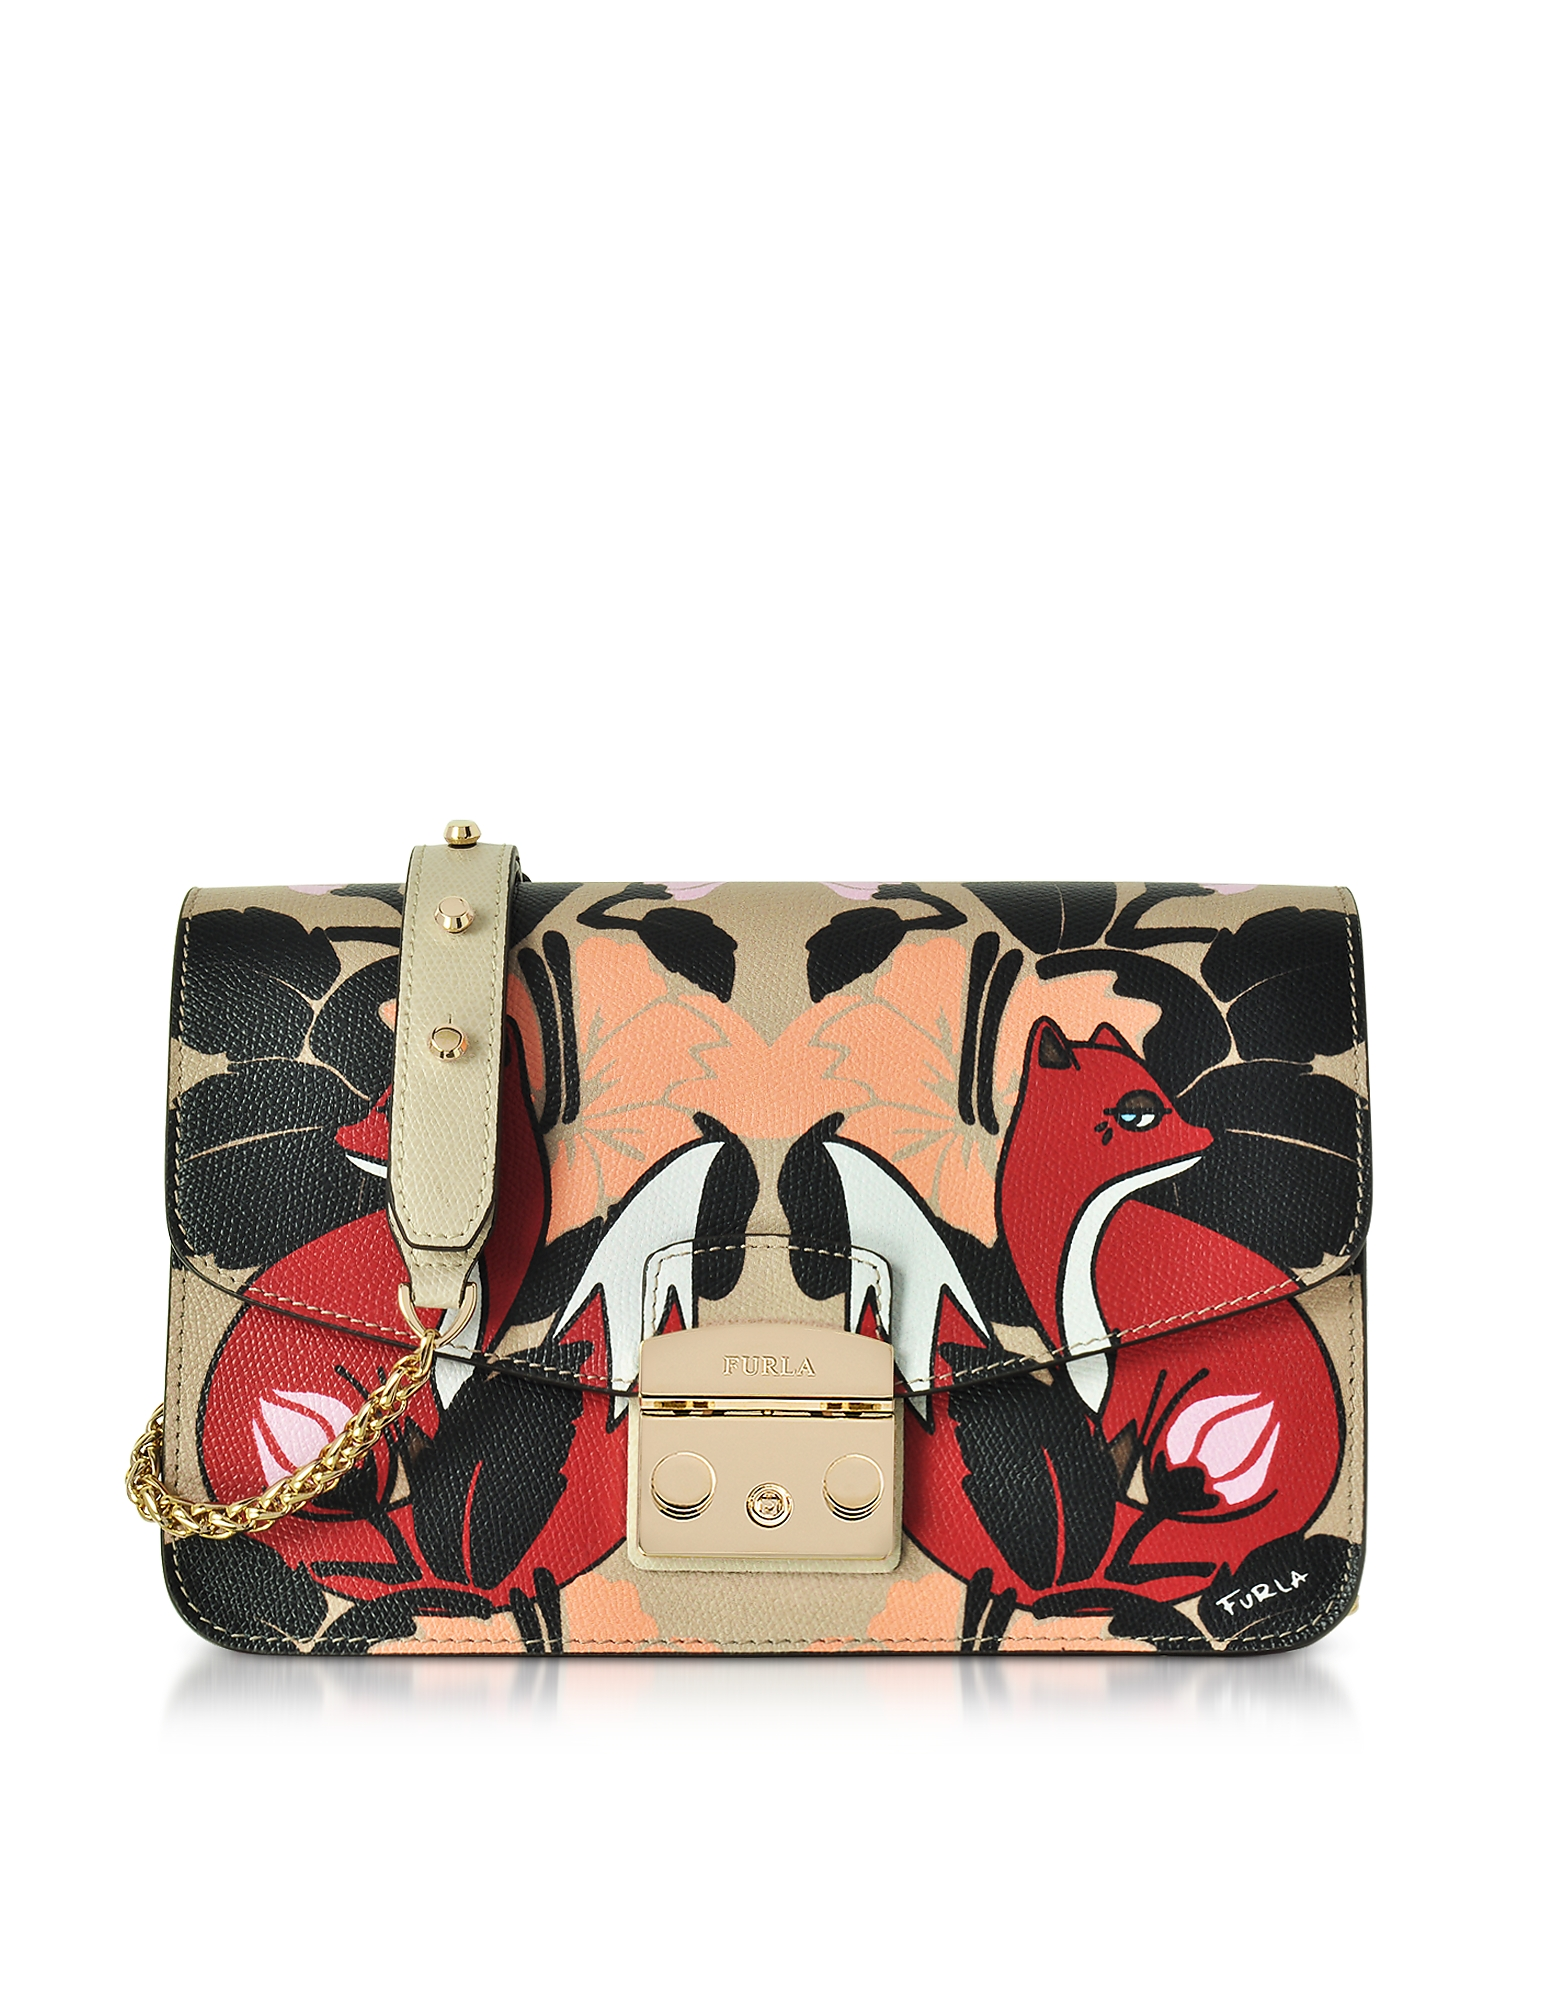 Furla Handbags, Toni Mercurio Fox Printed Leather Metropolis Small Shoulder Bag